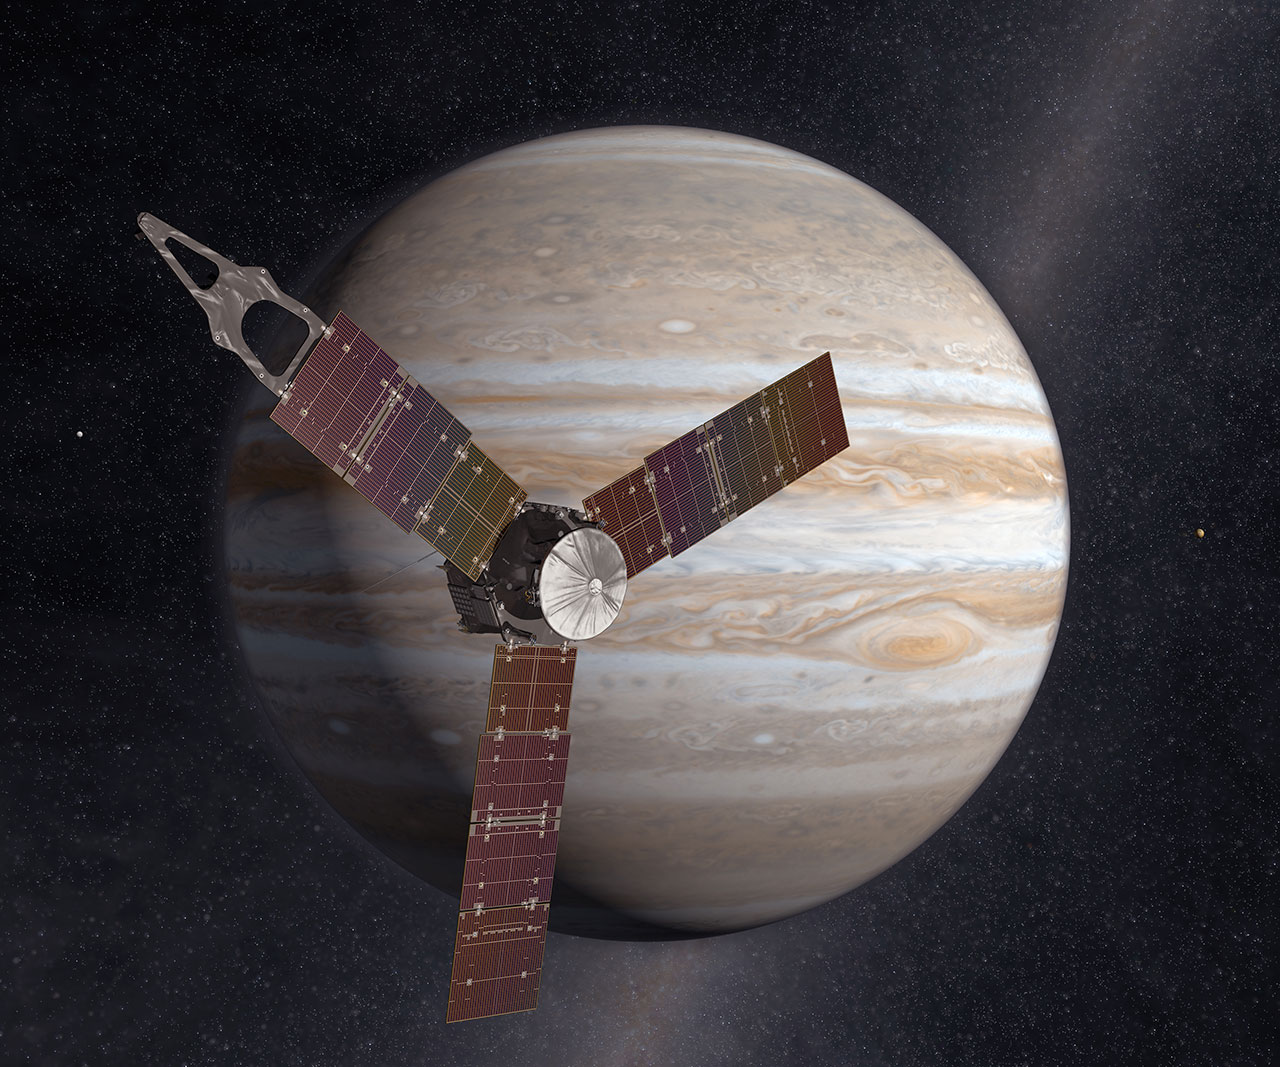 Juno's Jupiter Arrival Continues String of July 4 ...